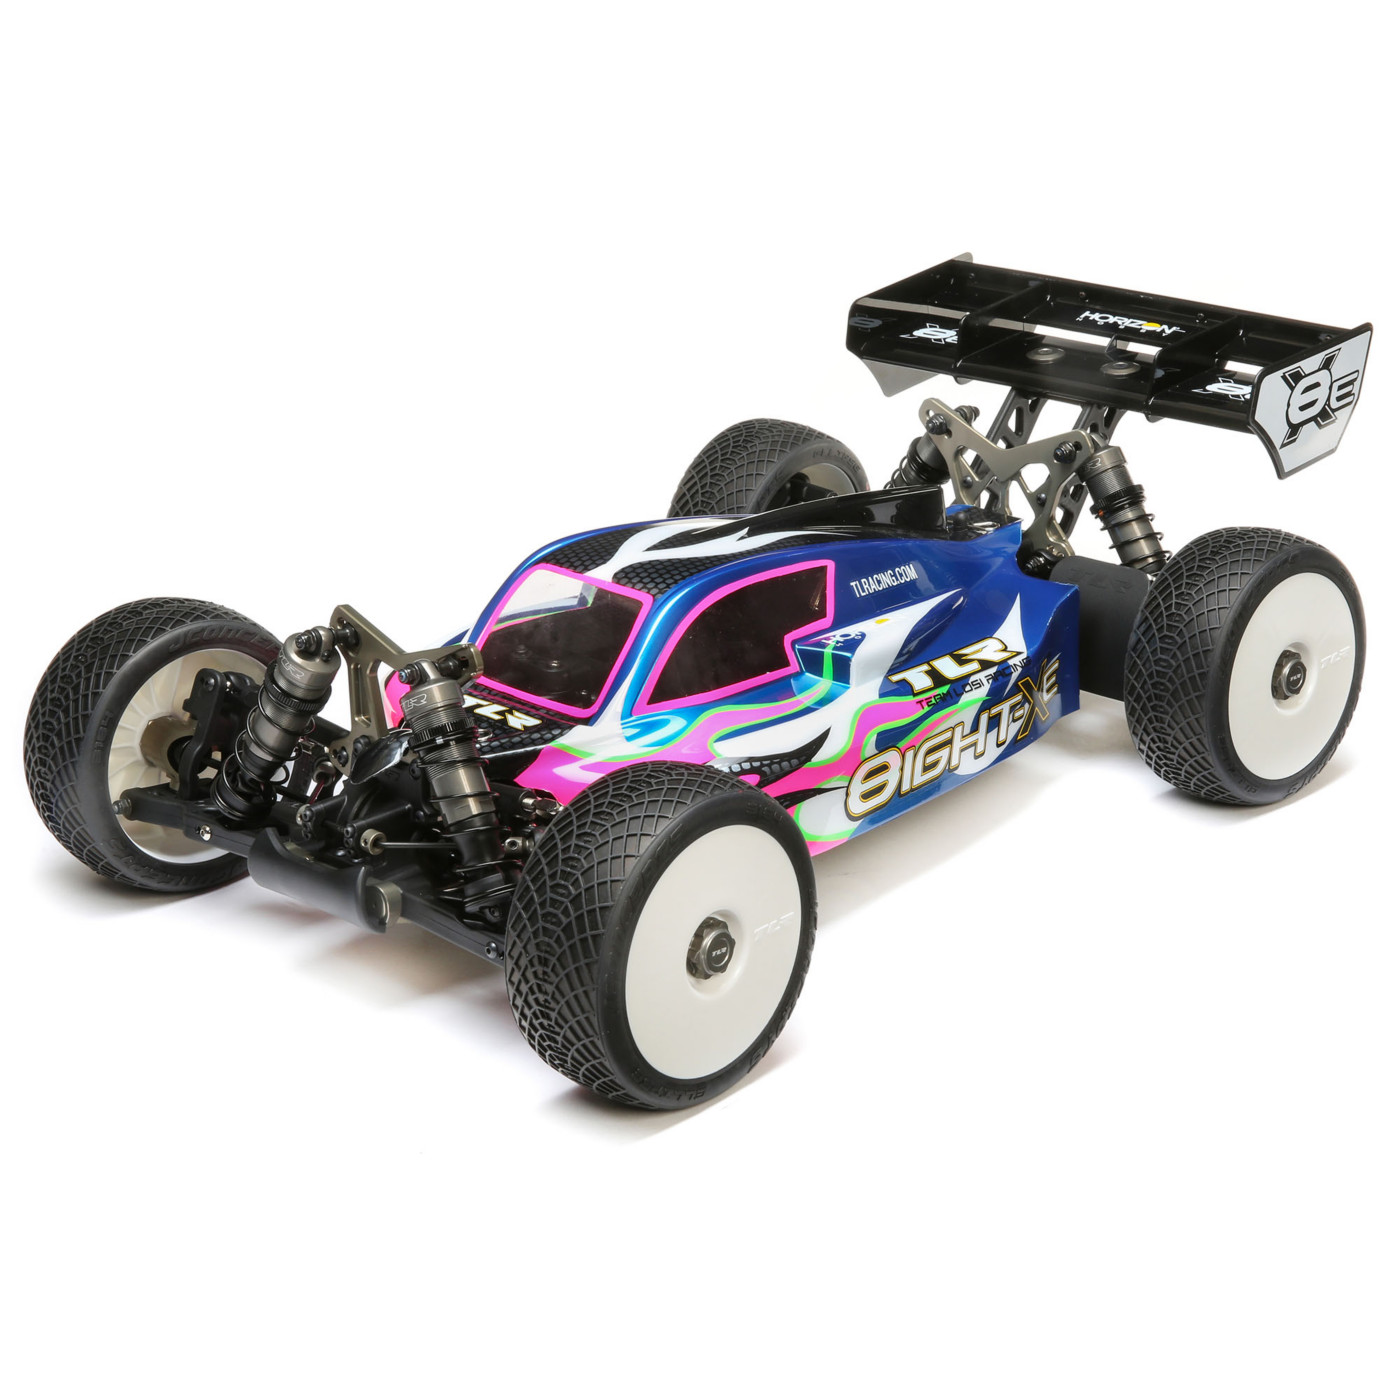 TLR 8IGHT-XE Race Kit 1/8 4WD Electric Buggy